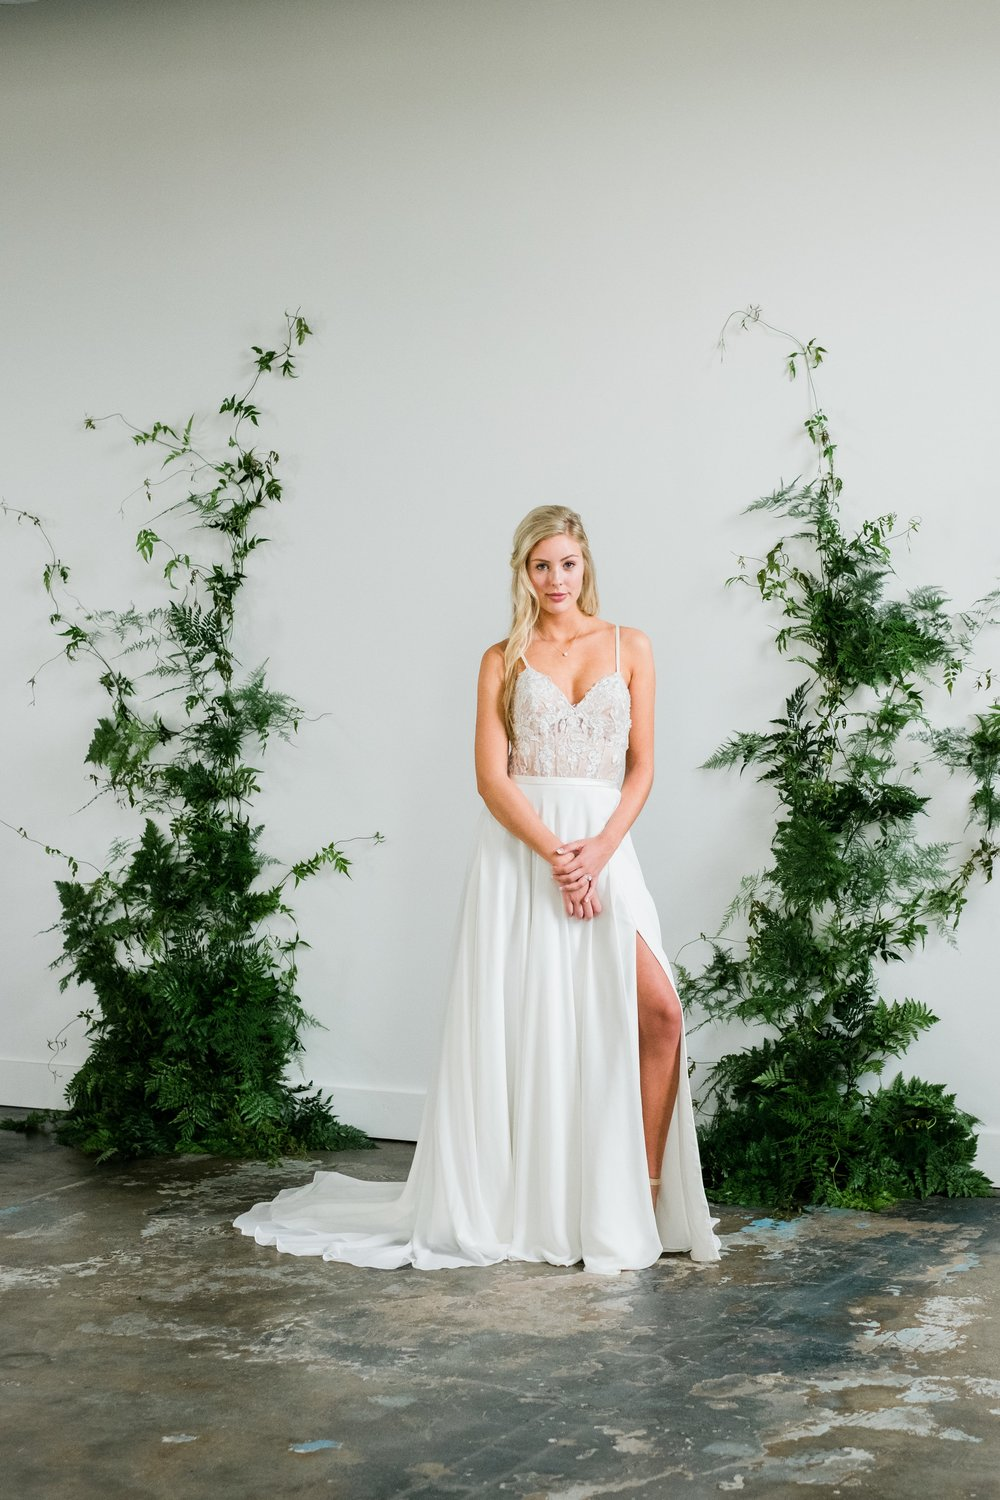 fern + floret botanial mn editorial floral design | central minnesota brides magazine | editorial florist installation | tim larsen photography | np event space storehouse 1531